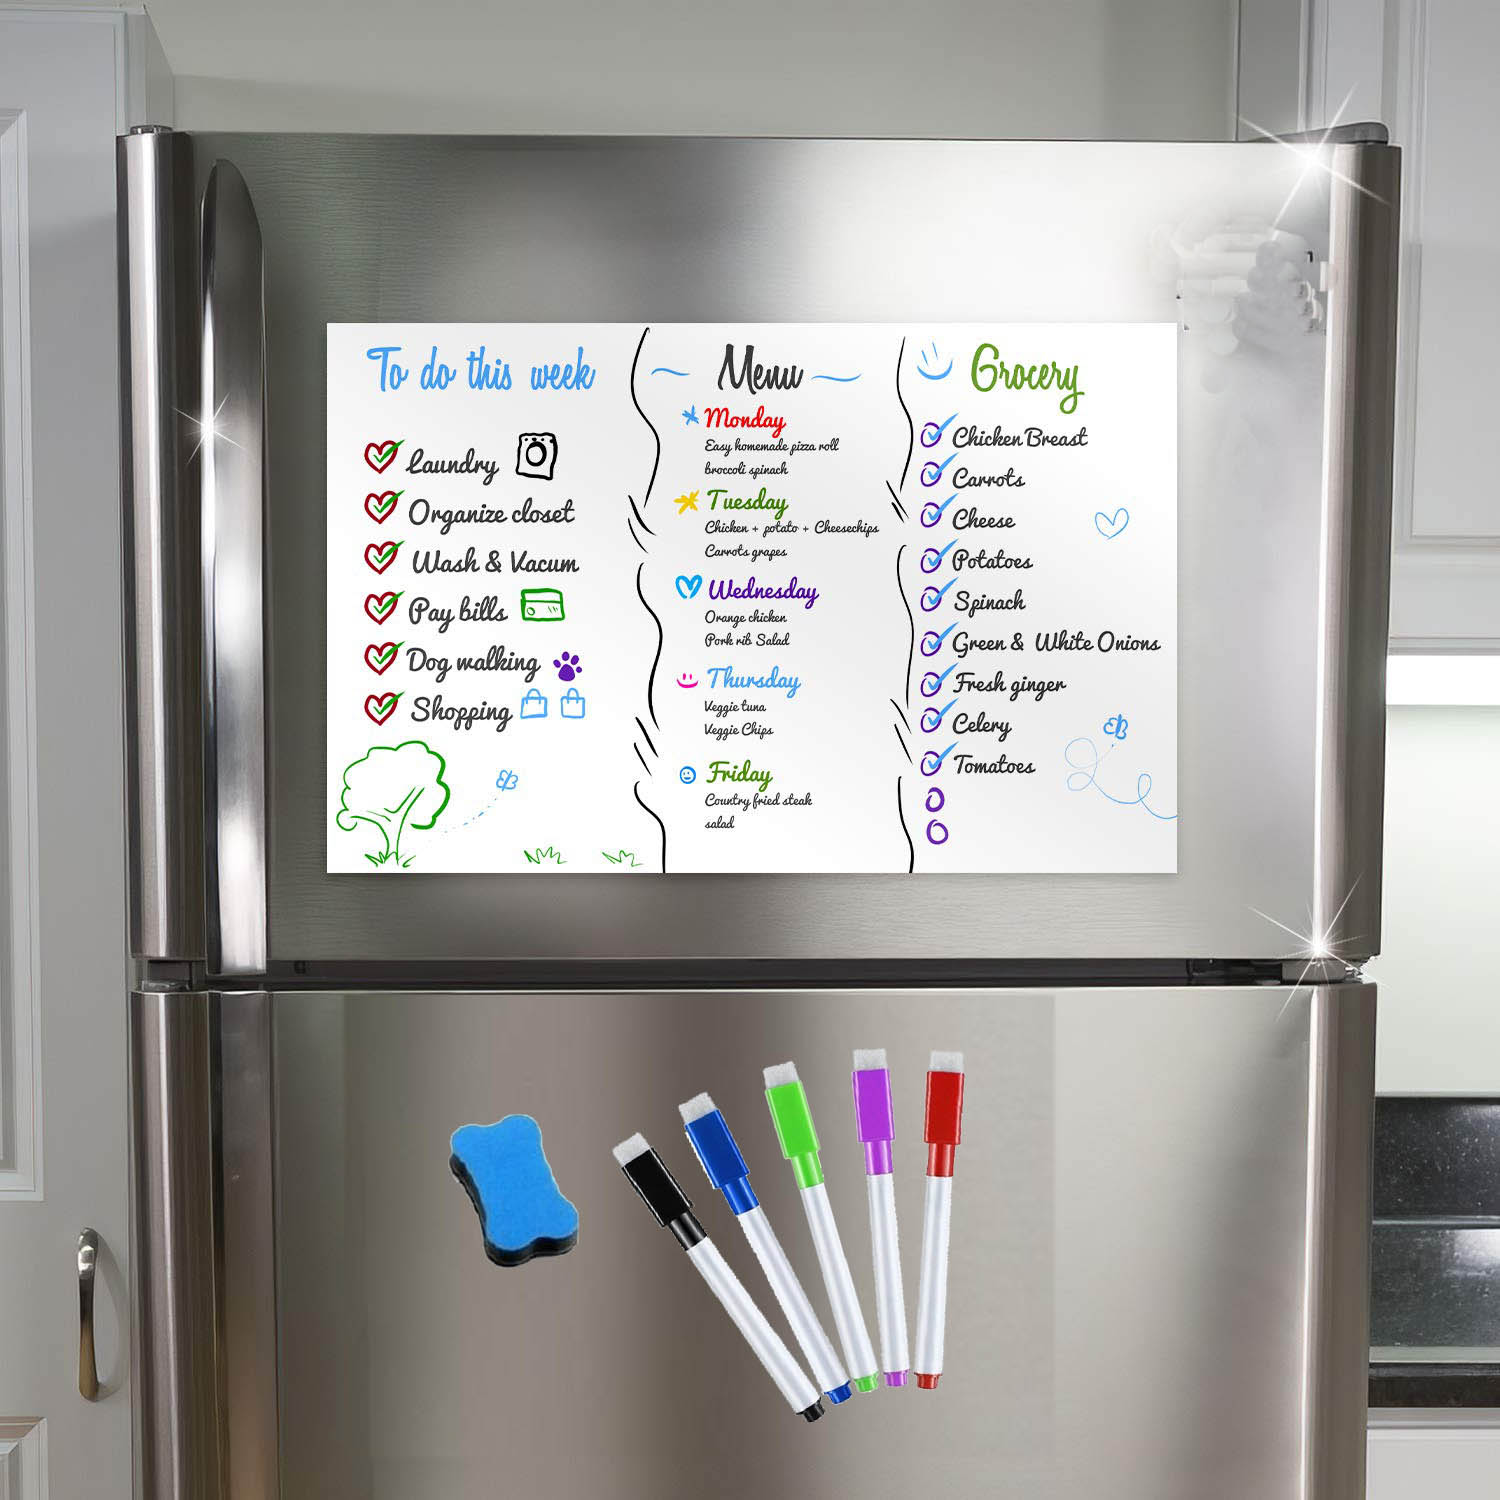 A3 Magnetic Erasable Whiteboard Markers Eraser Fridge Magnet Sticker Organizer Week Planner Reminder Board Notepad Sheet List